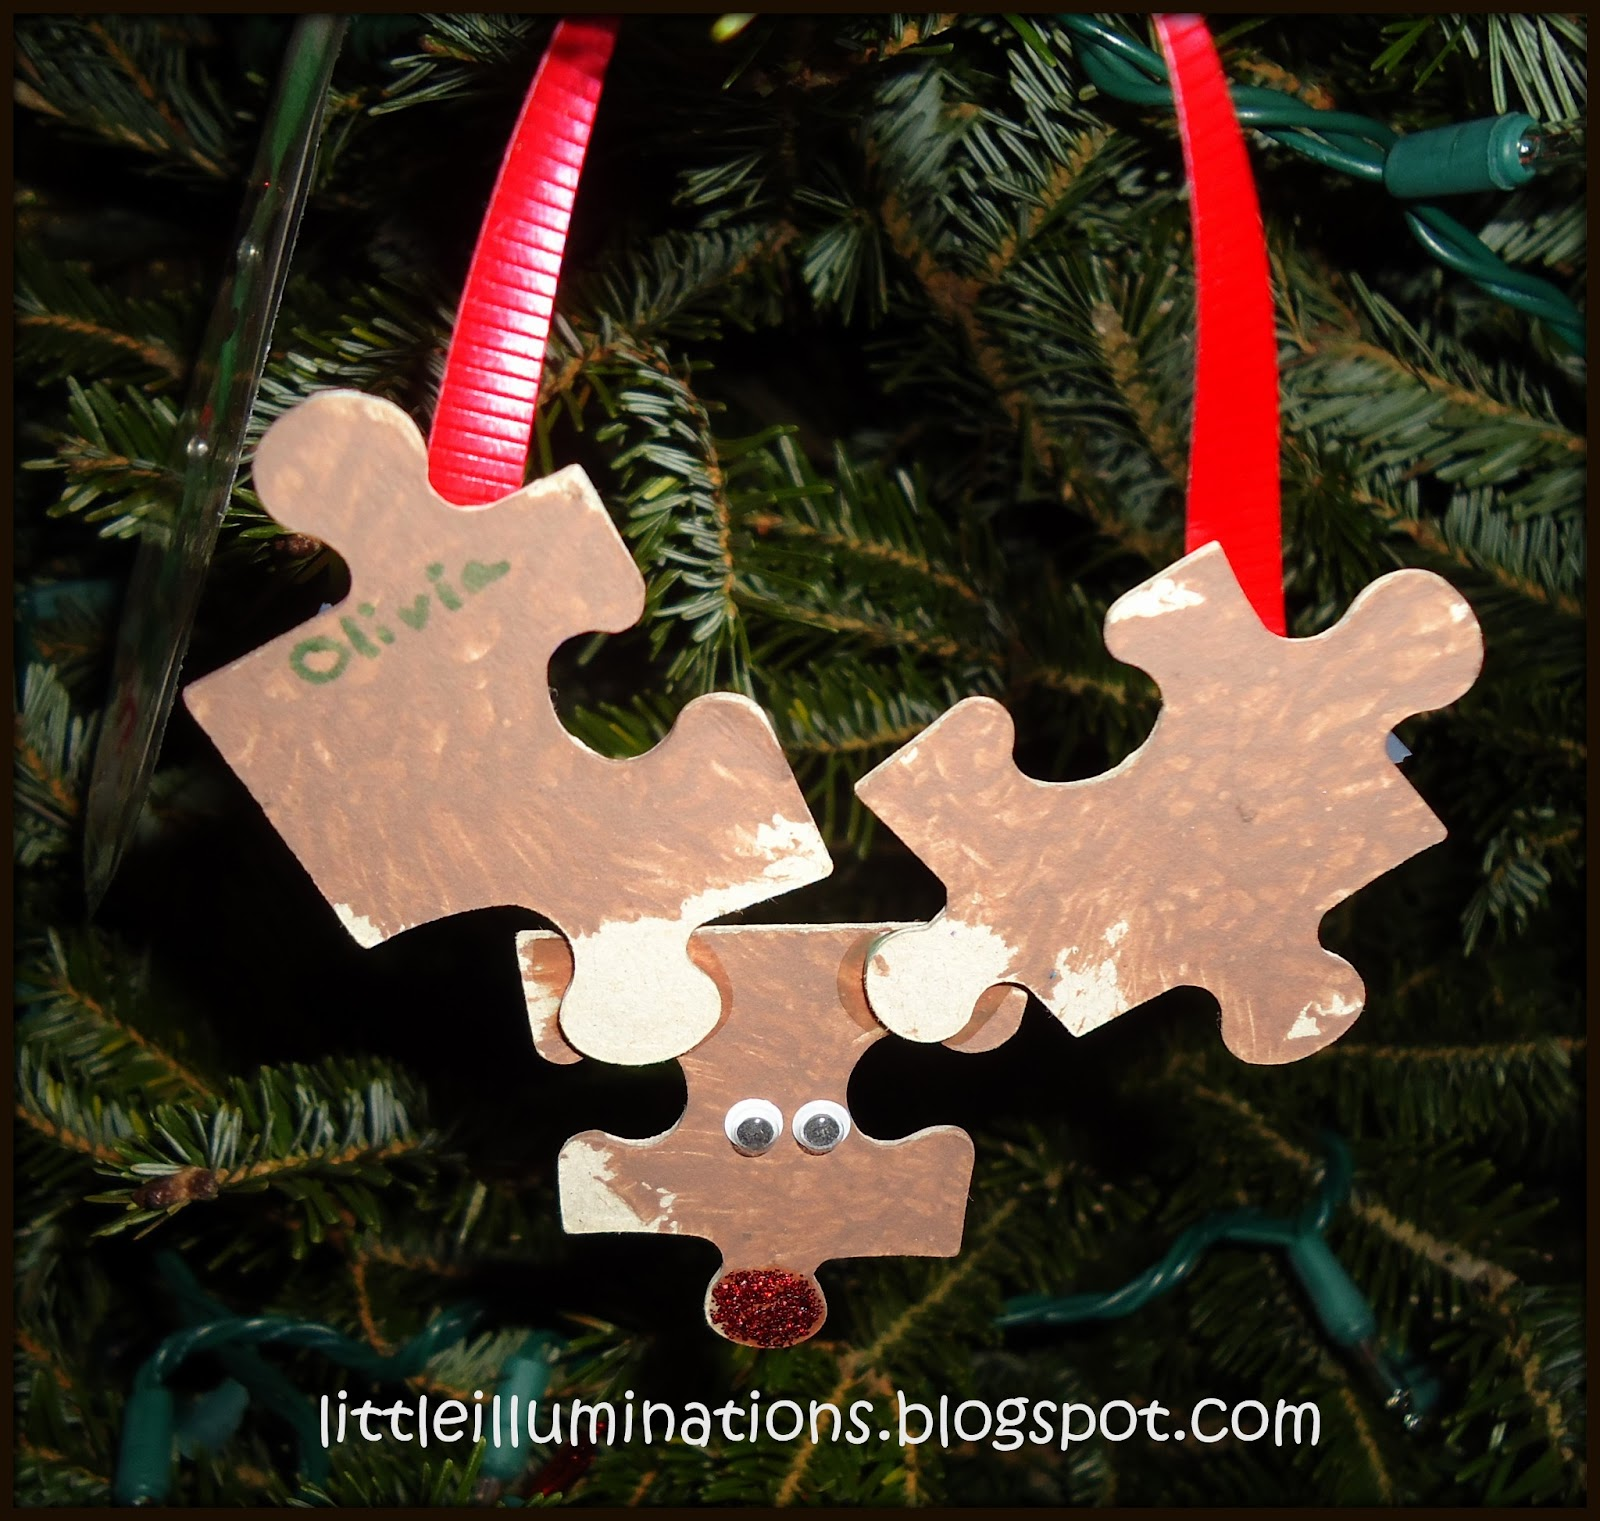 How to win - Christmas gift ideas for toddlers to make for parents